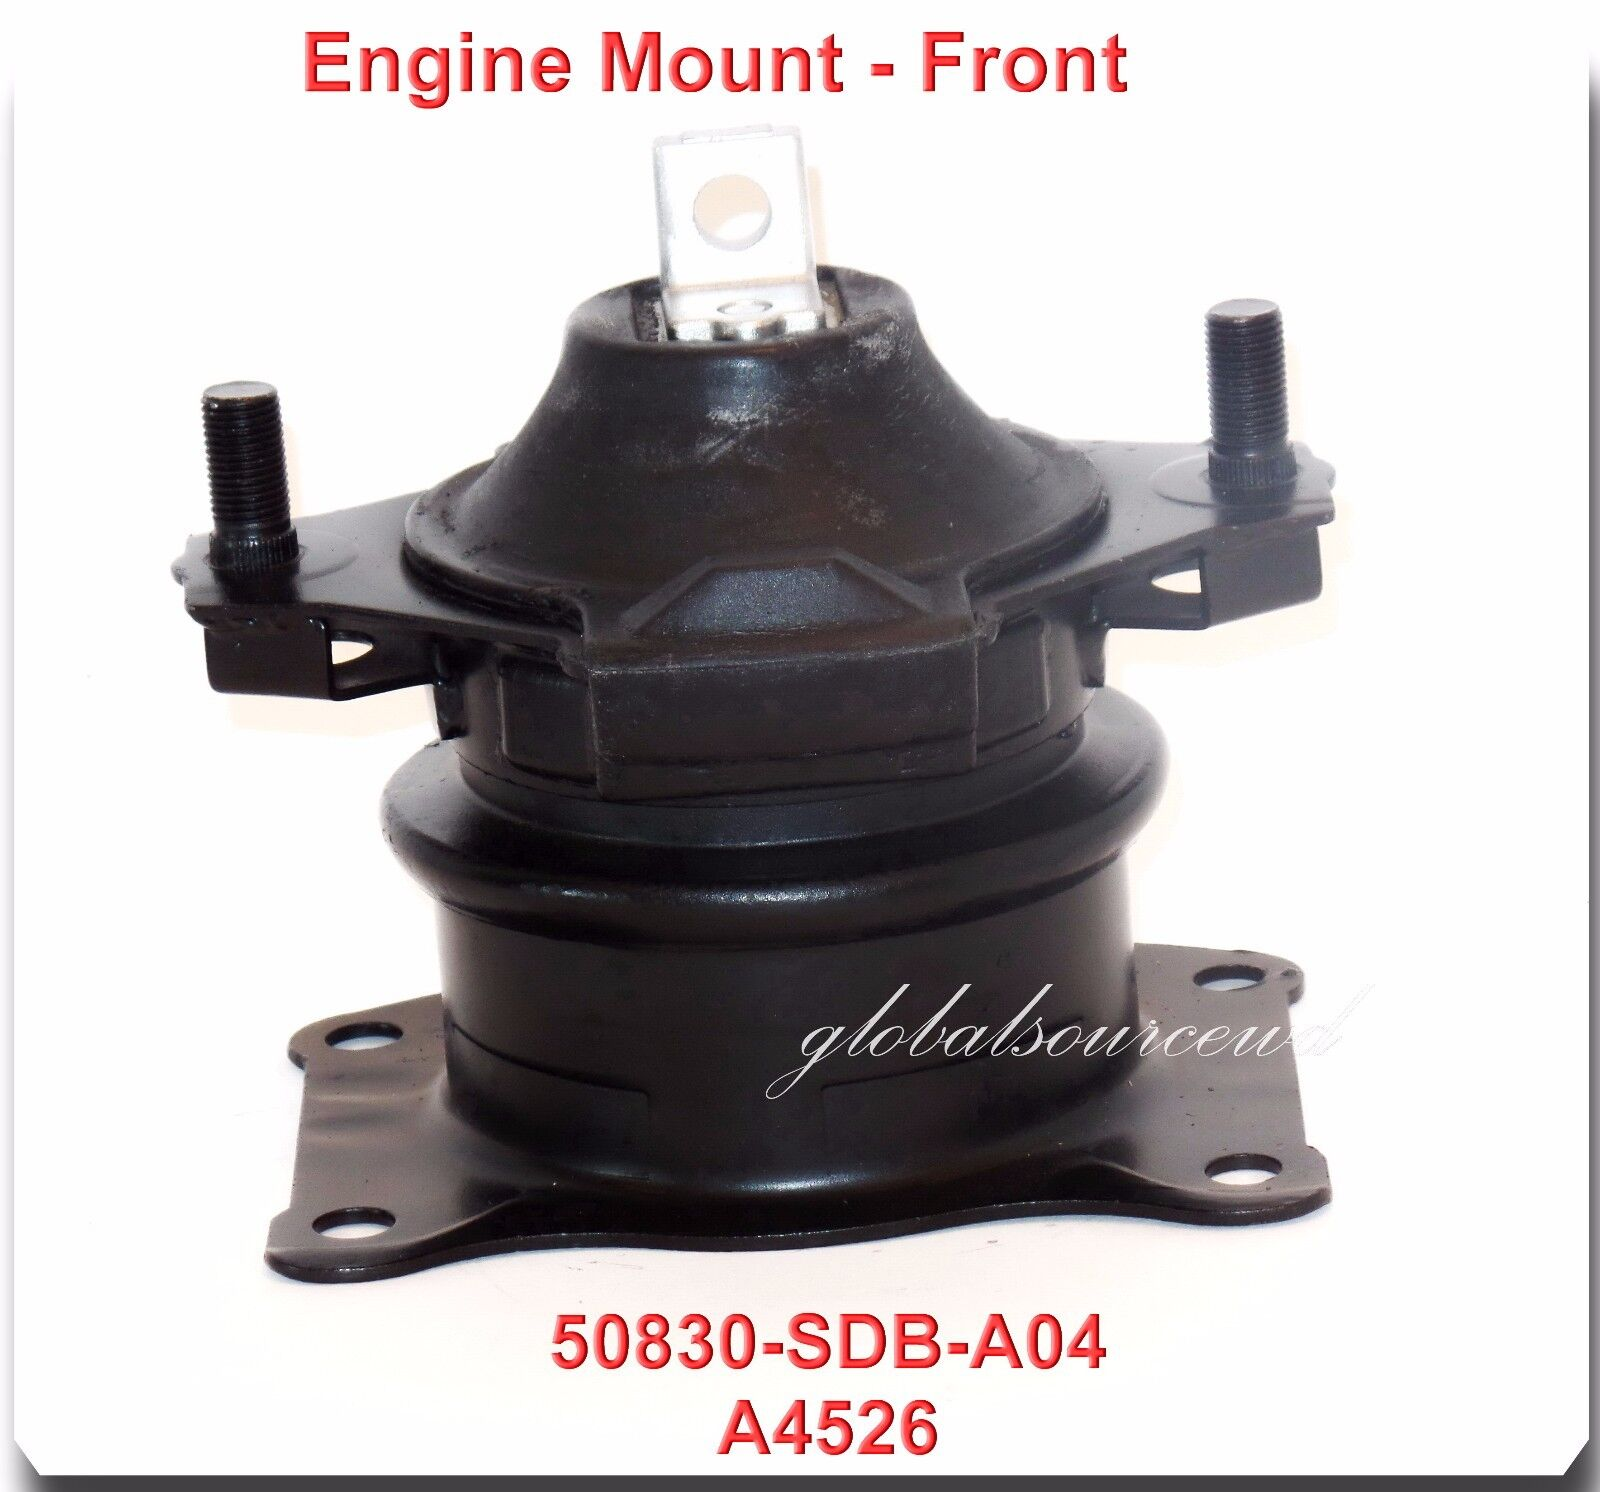 Kit 3 Pcs Engine Mount Font Right Acura Tl 2004 2005 2006 V6 Mounting Fits For 2011 Honda Civic Non Si R18 Norton Secured Powered By Verisign